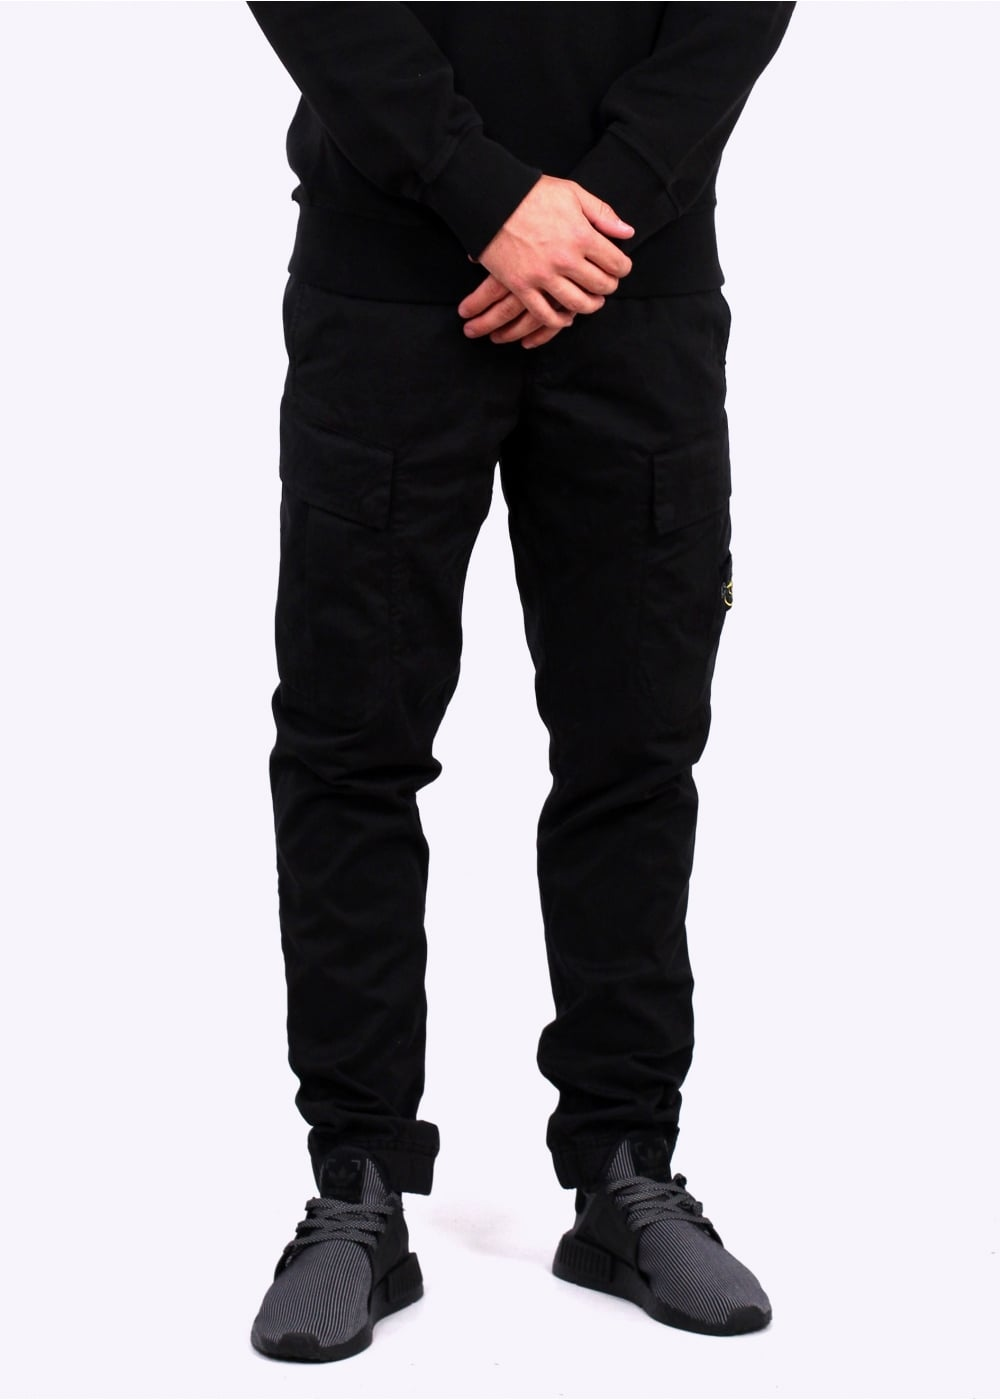 Choose from the latest collection of trousers & chinos for men and shop your favourite items on sale. your browser is not supported. To use ASOS, we recommend using the latest versions of Chrome, Firefox, Safari or Internet Explorer. French Connection Cuffed Chino Trousers.